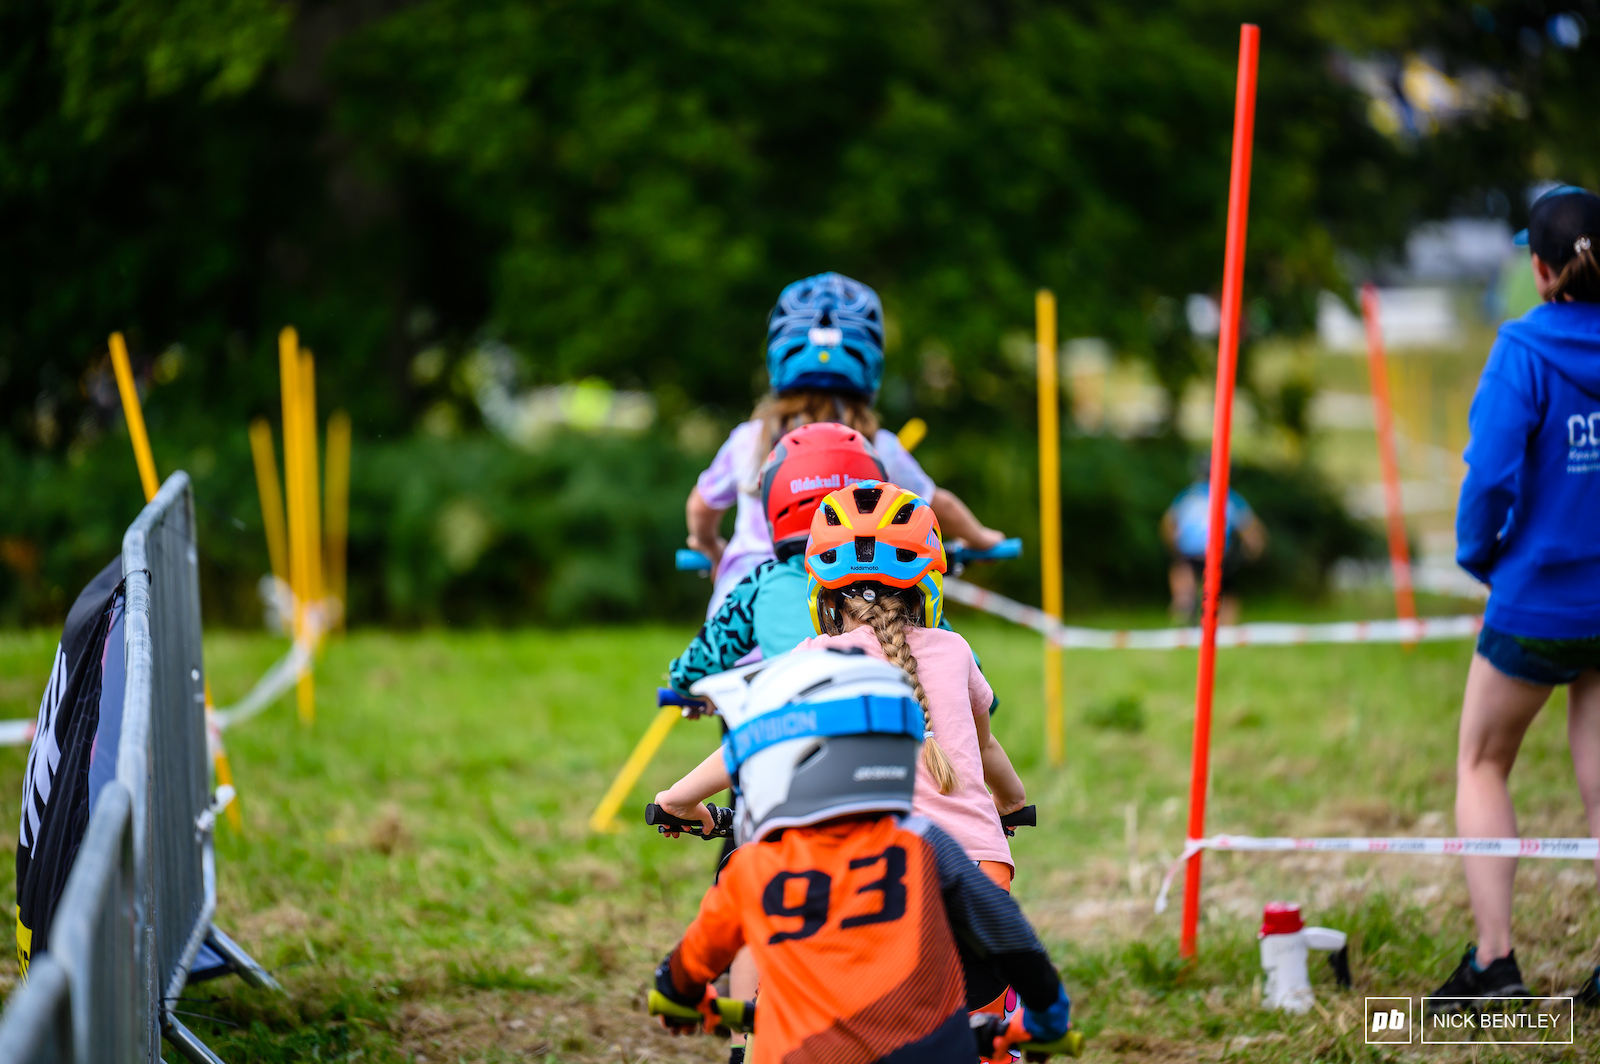 Riders of all sizes raced at the Dual Slalom